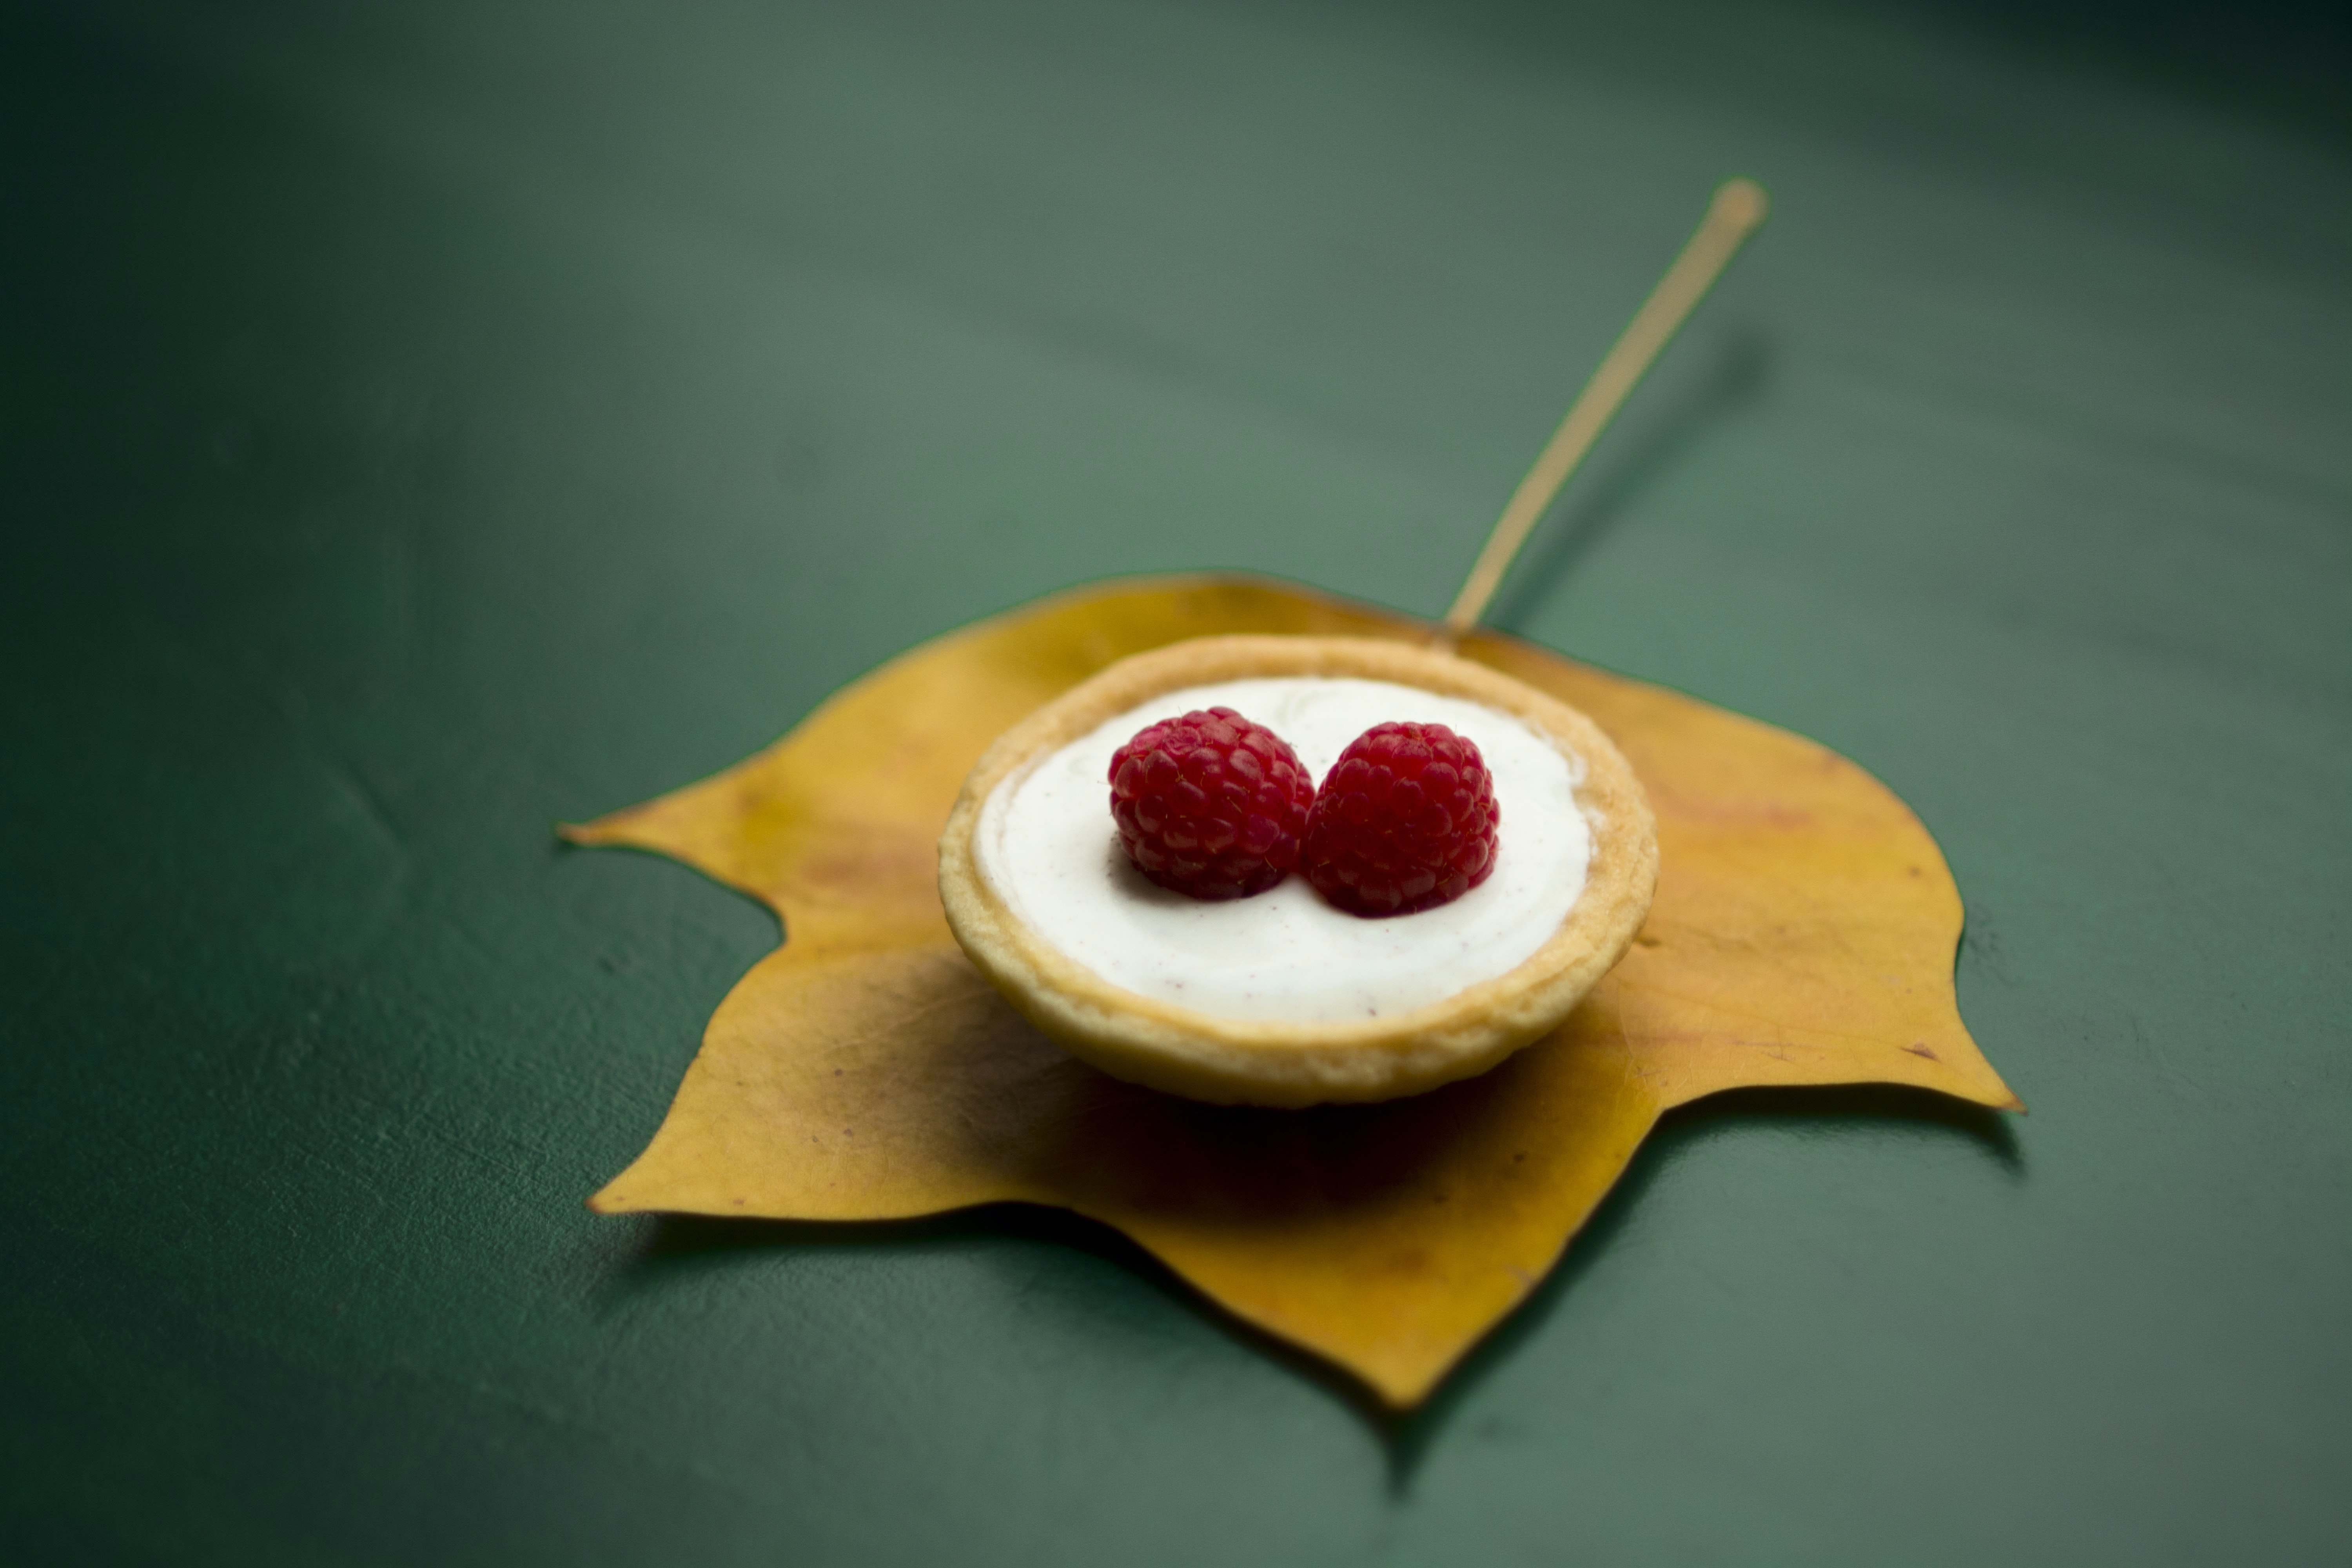 Raspberry pastry on an orangish yellow leaf on a green table